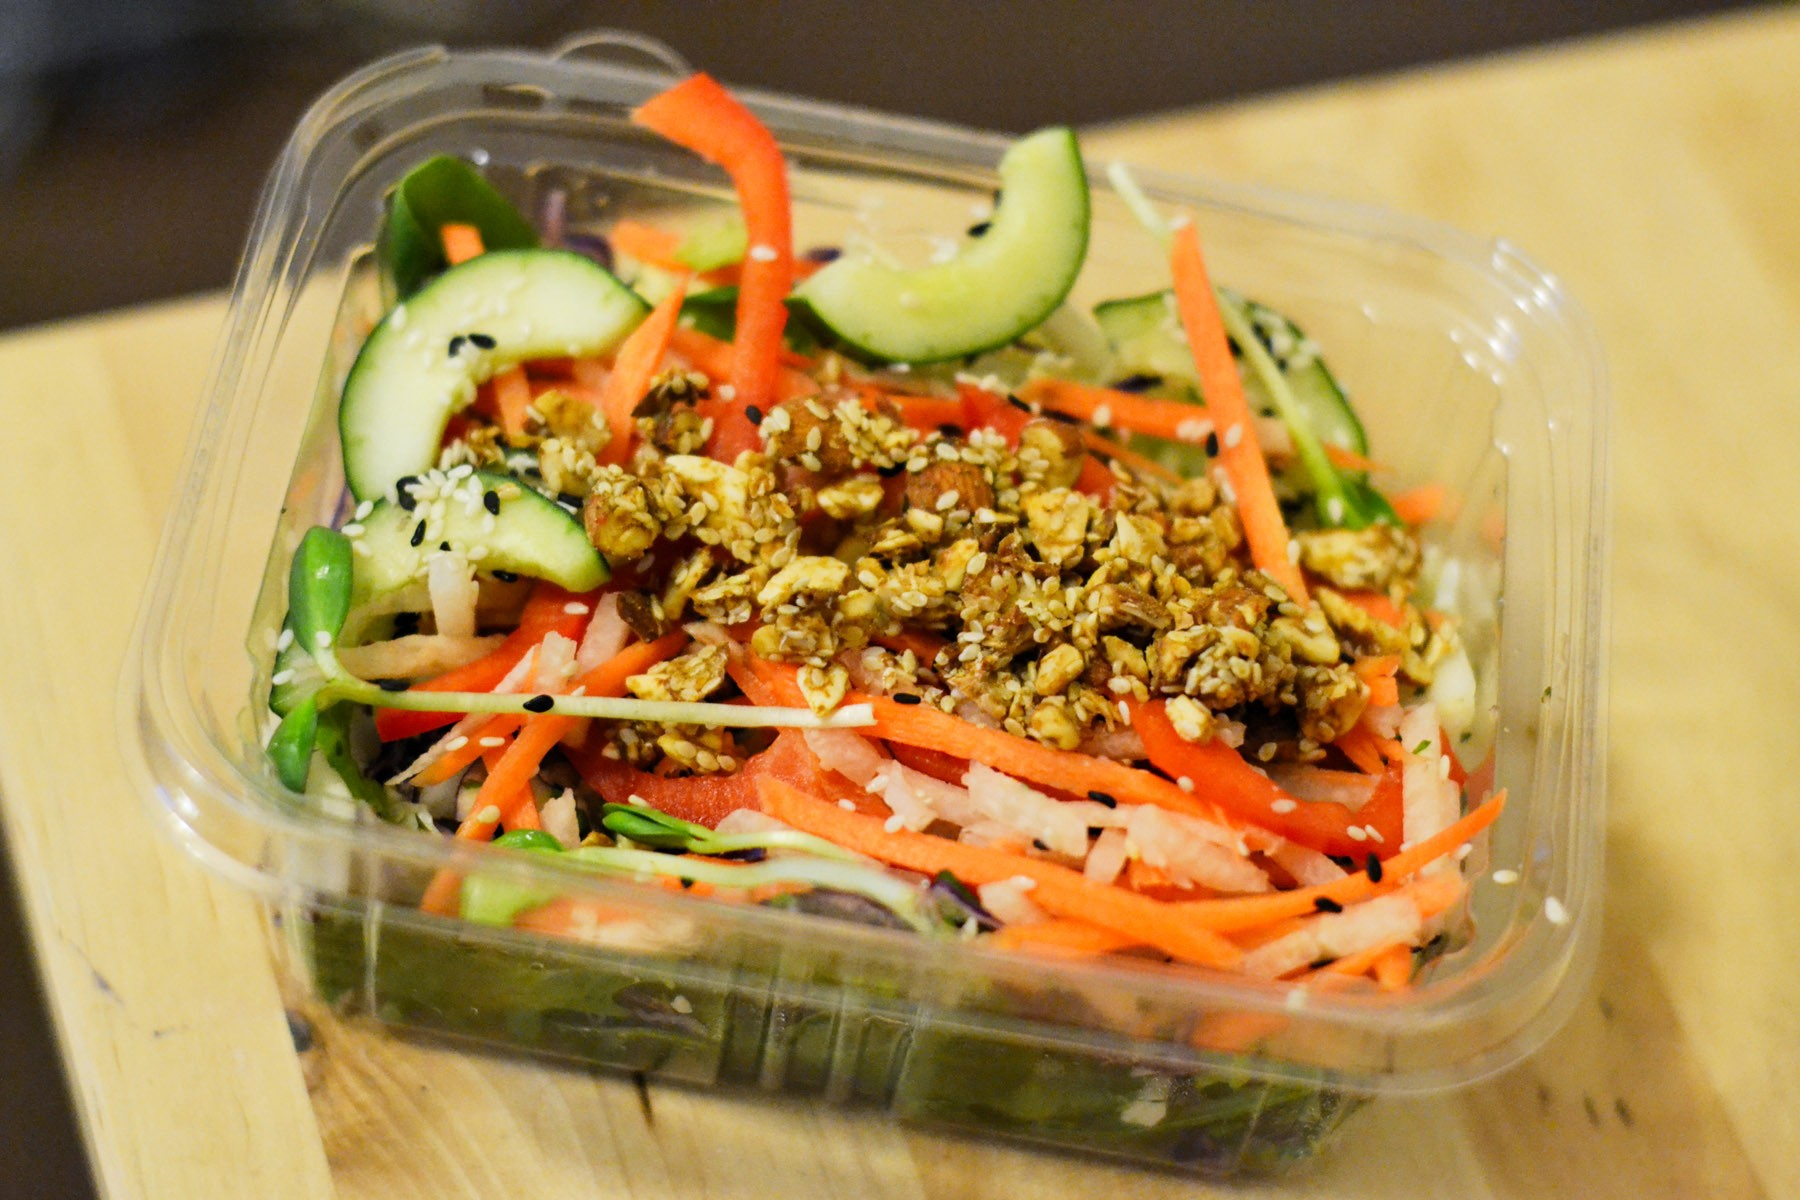 A crunchy salad, part of the Beaming LEAN cleanse